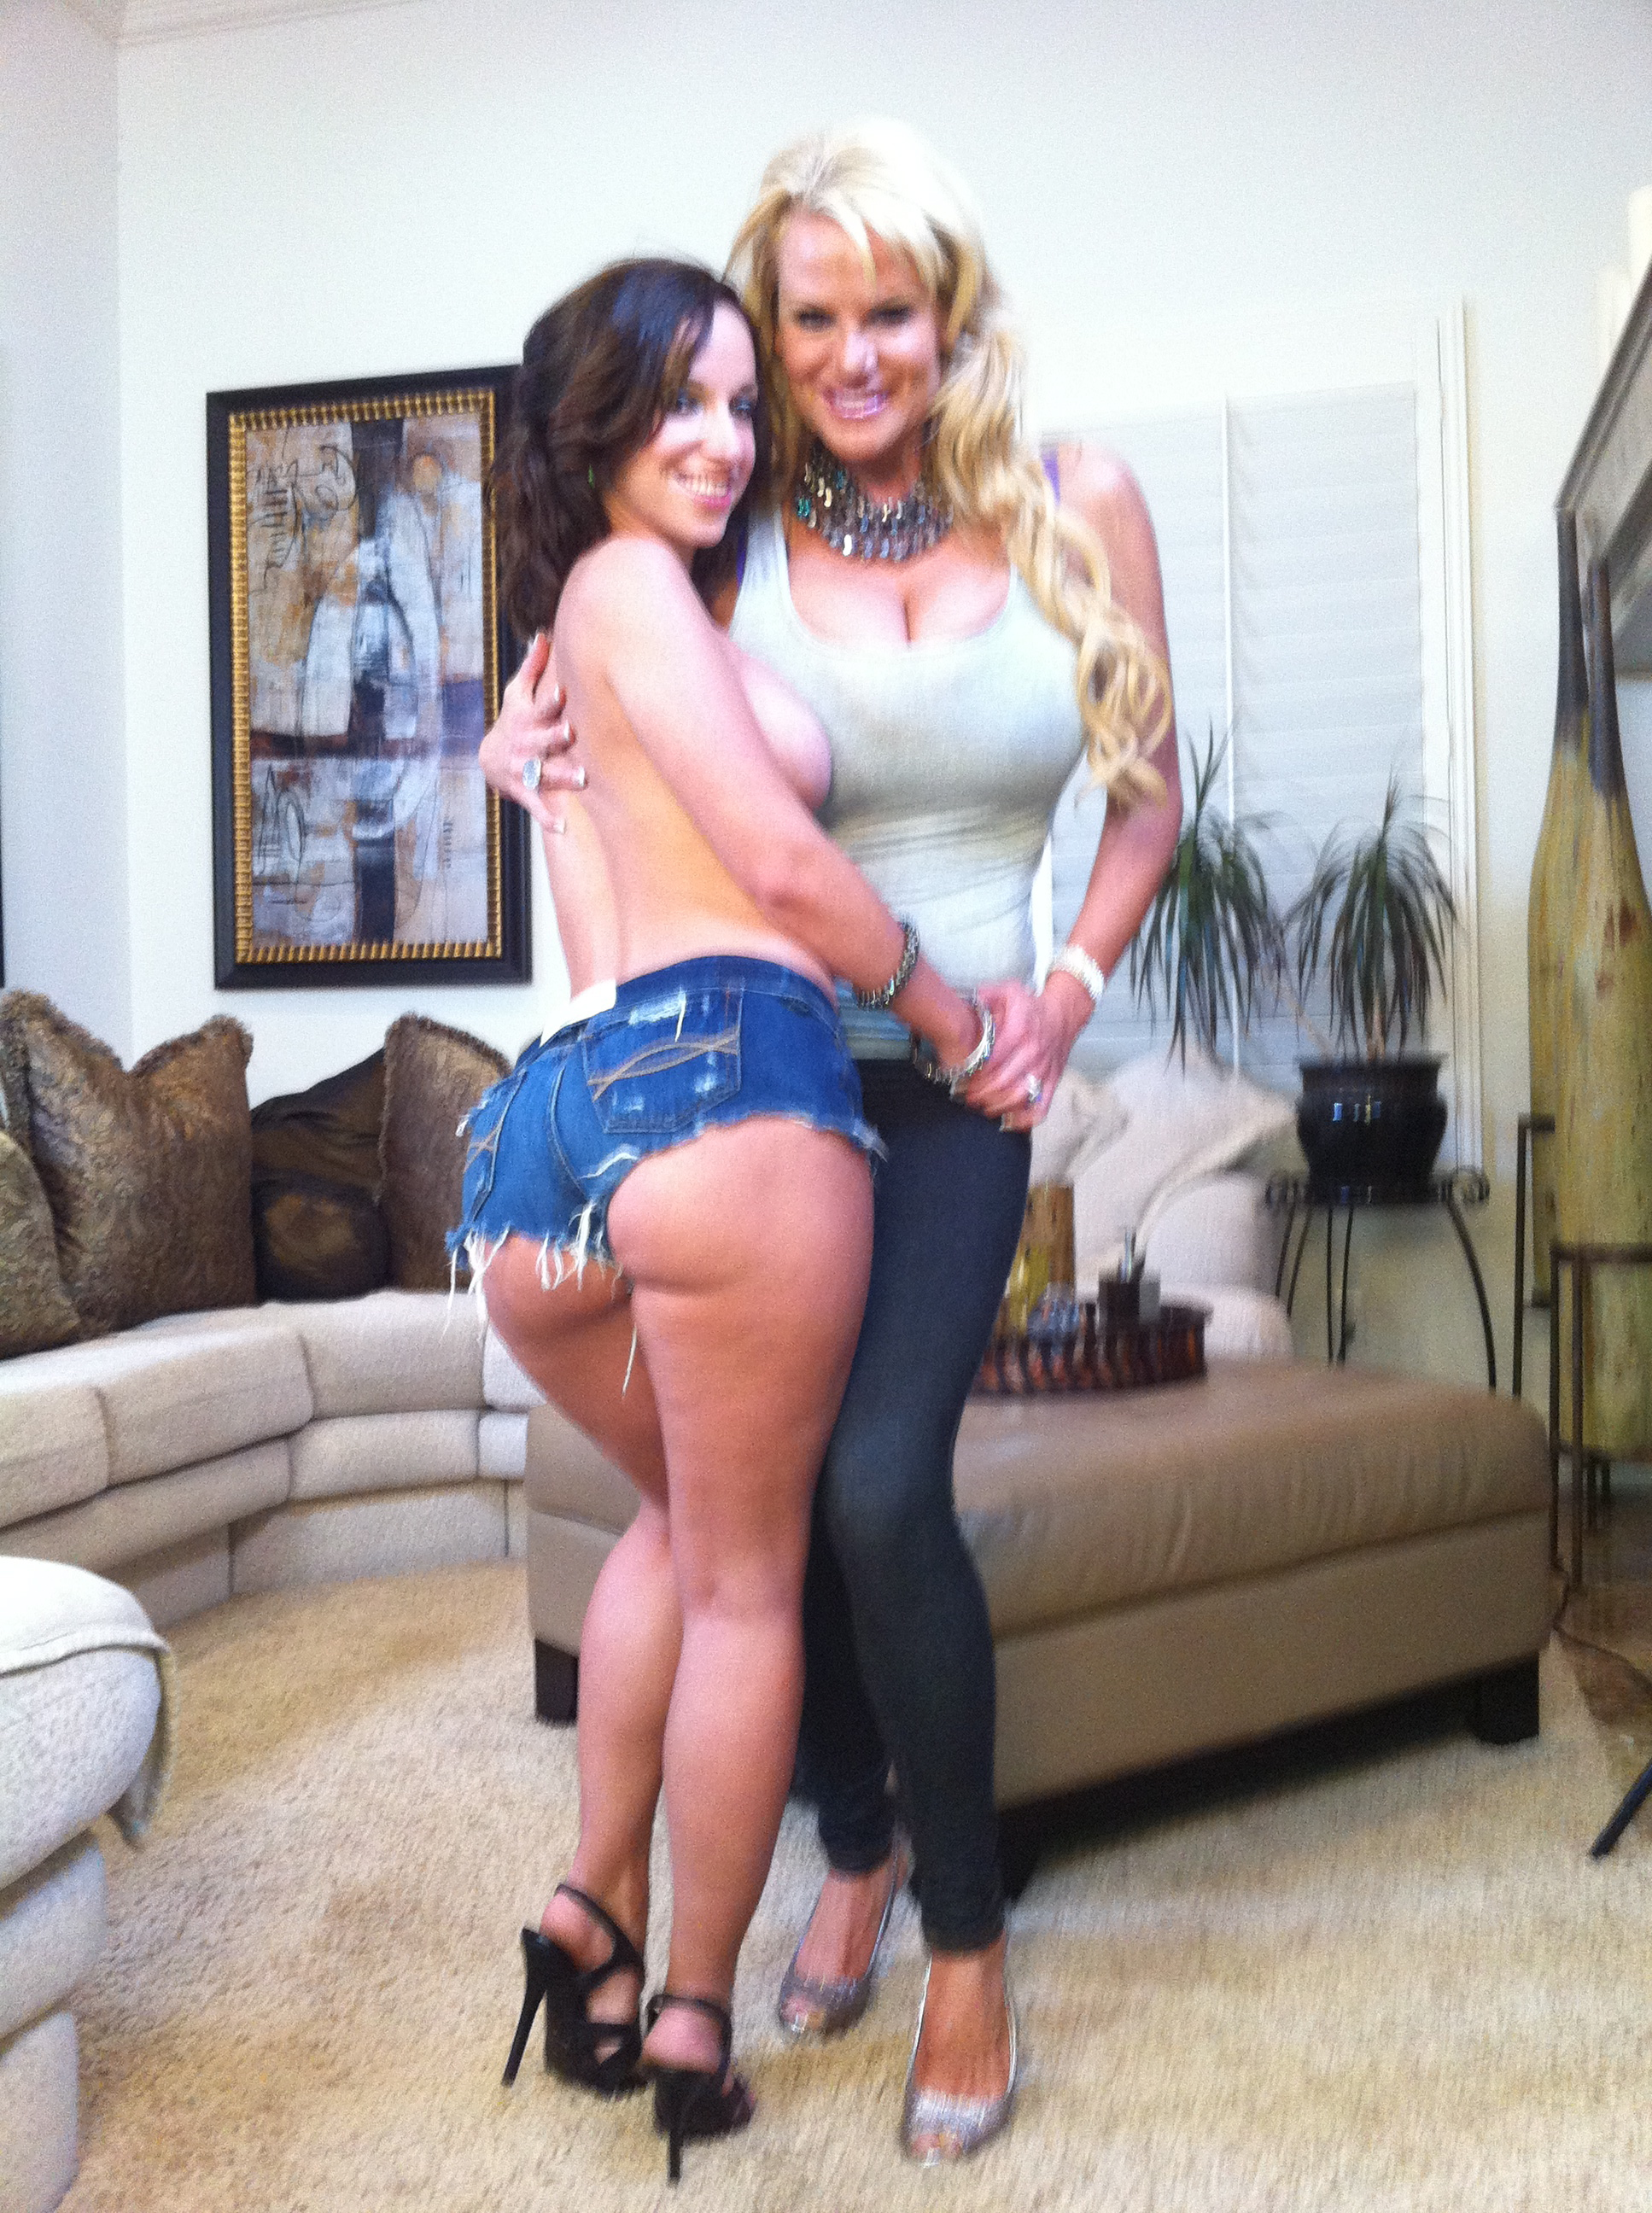 Discussion porn fidelity kelly madison and deauxma are